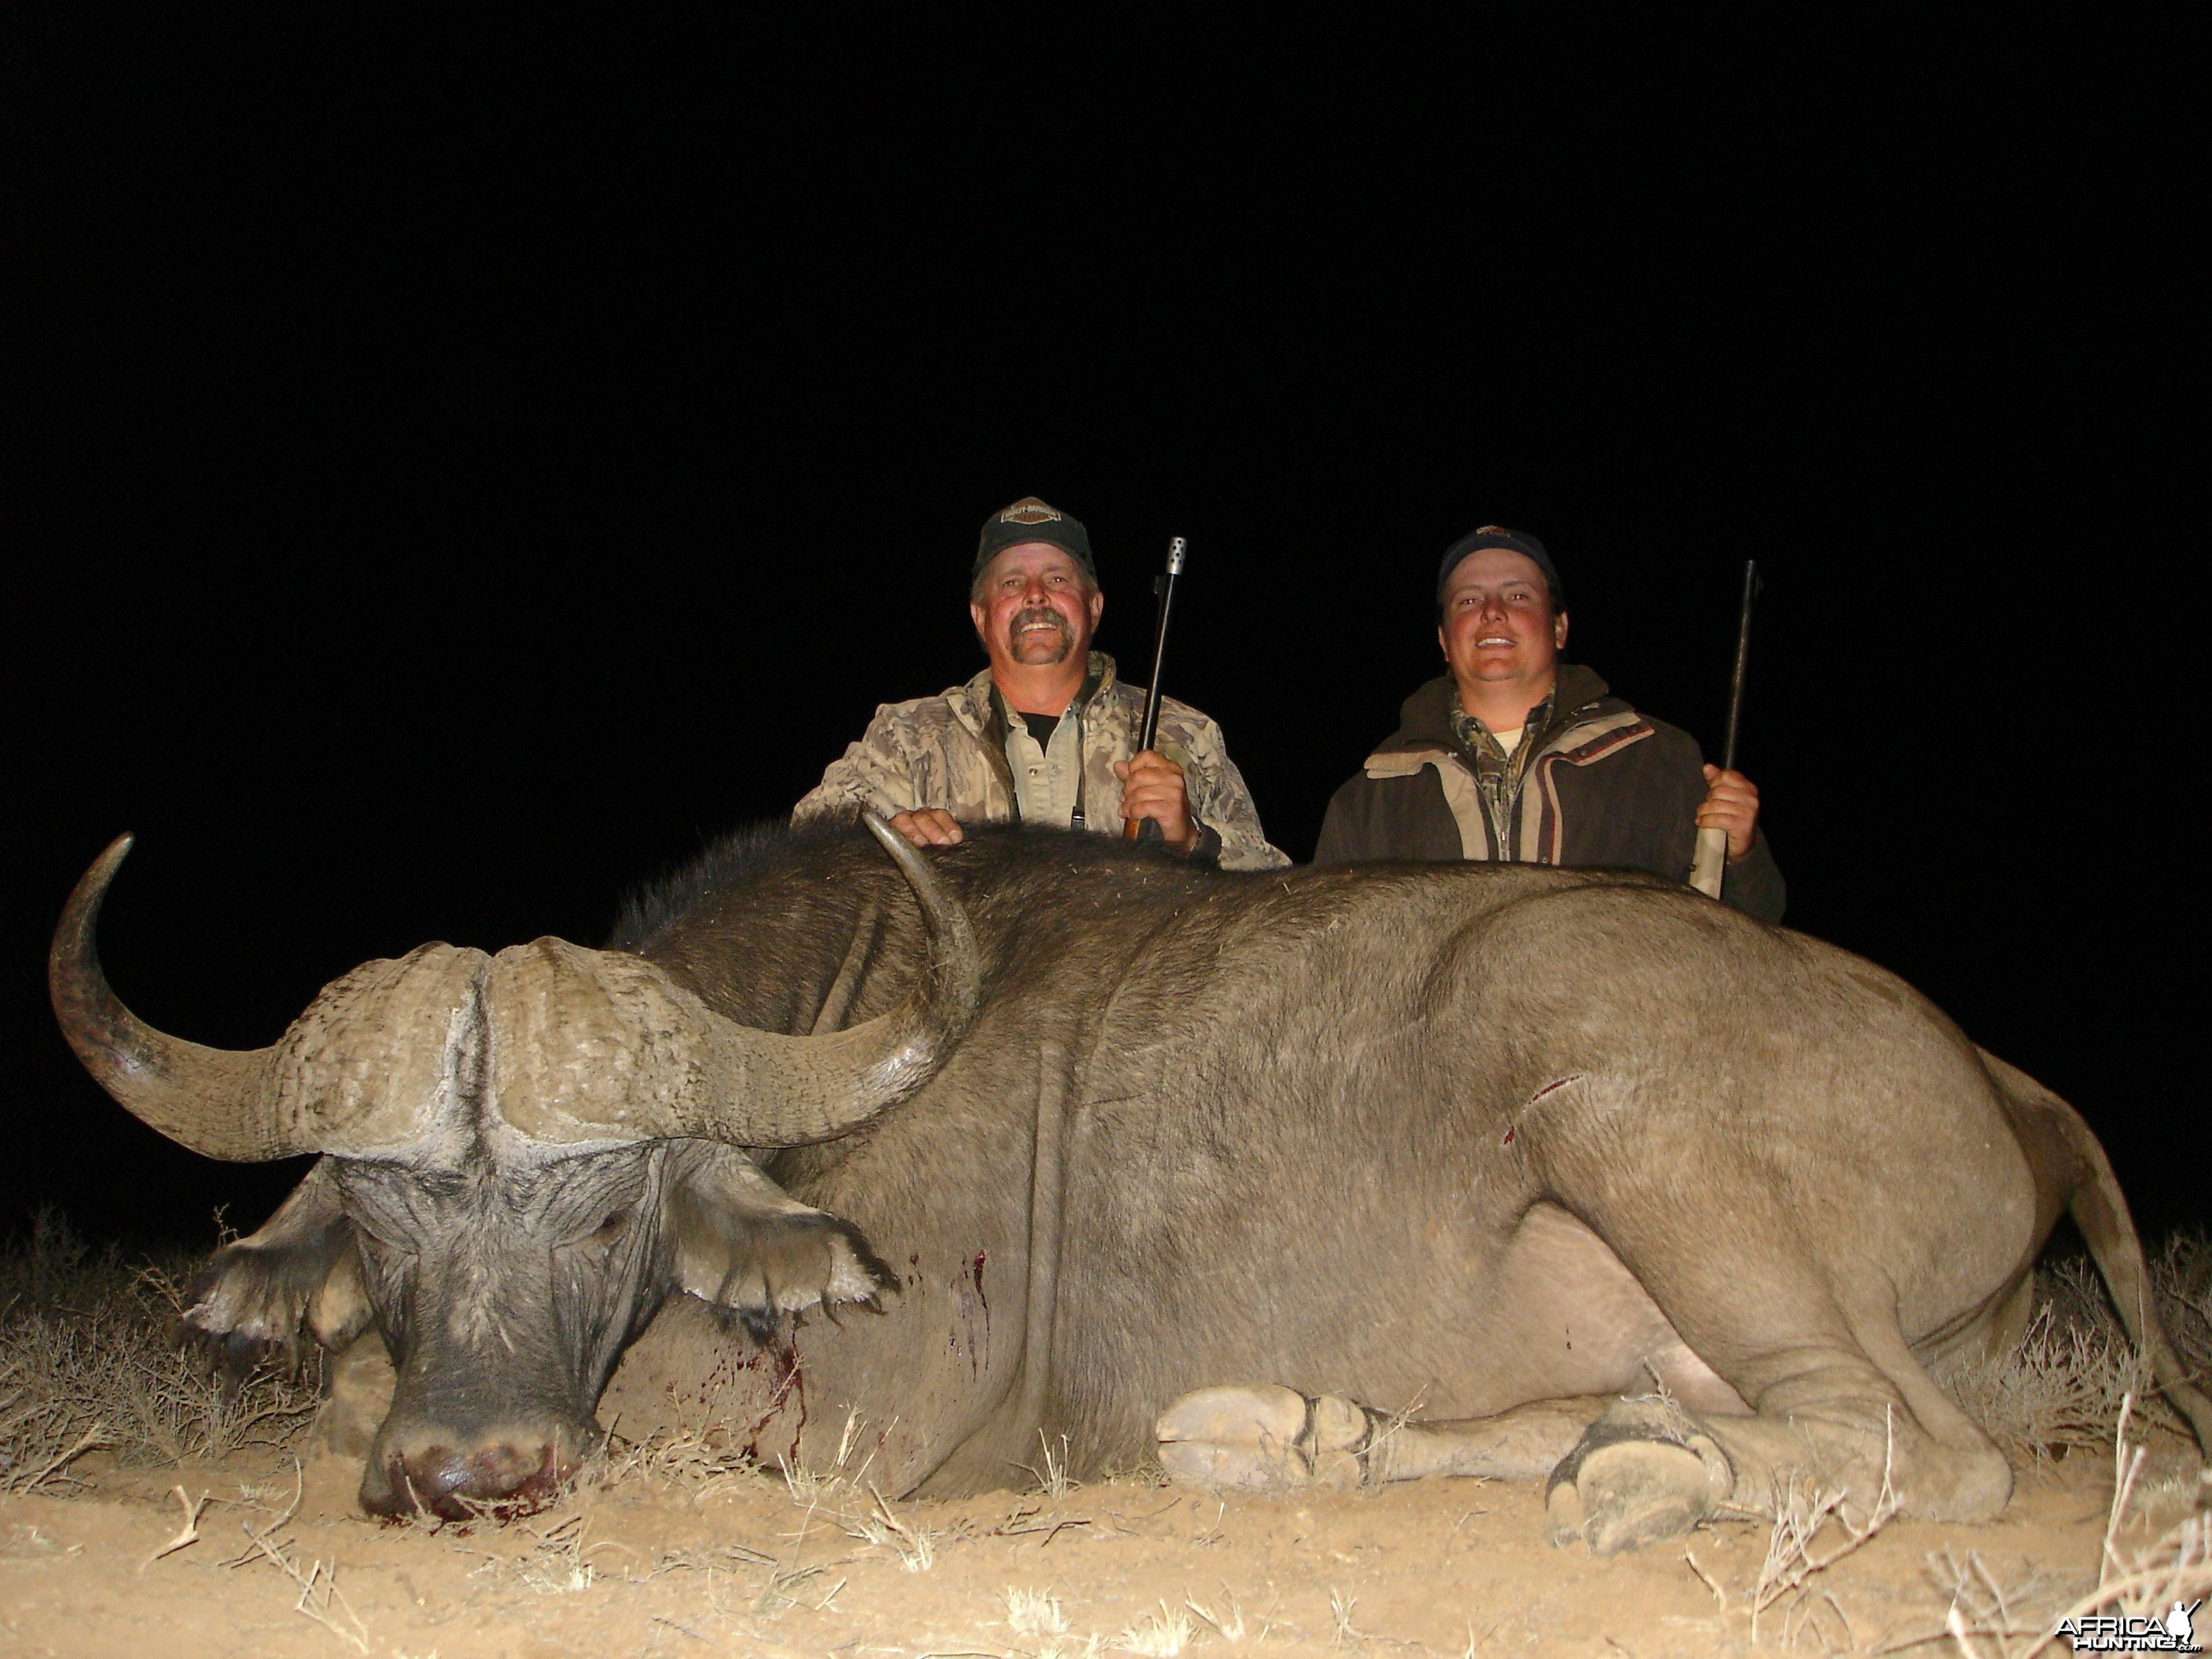 PH Ricus de Villiers with Wintershoek Johnny Vivier Safaris in South Africa